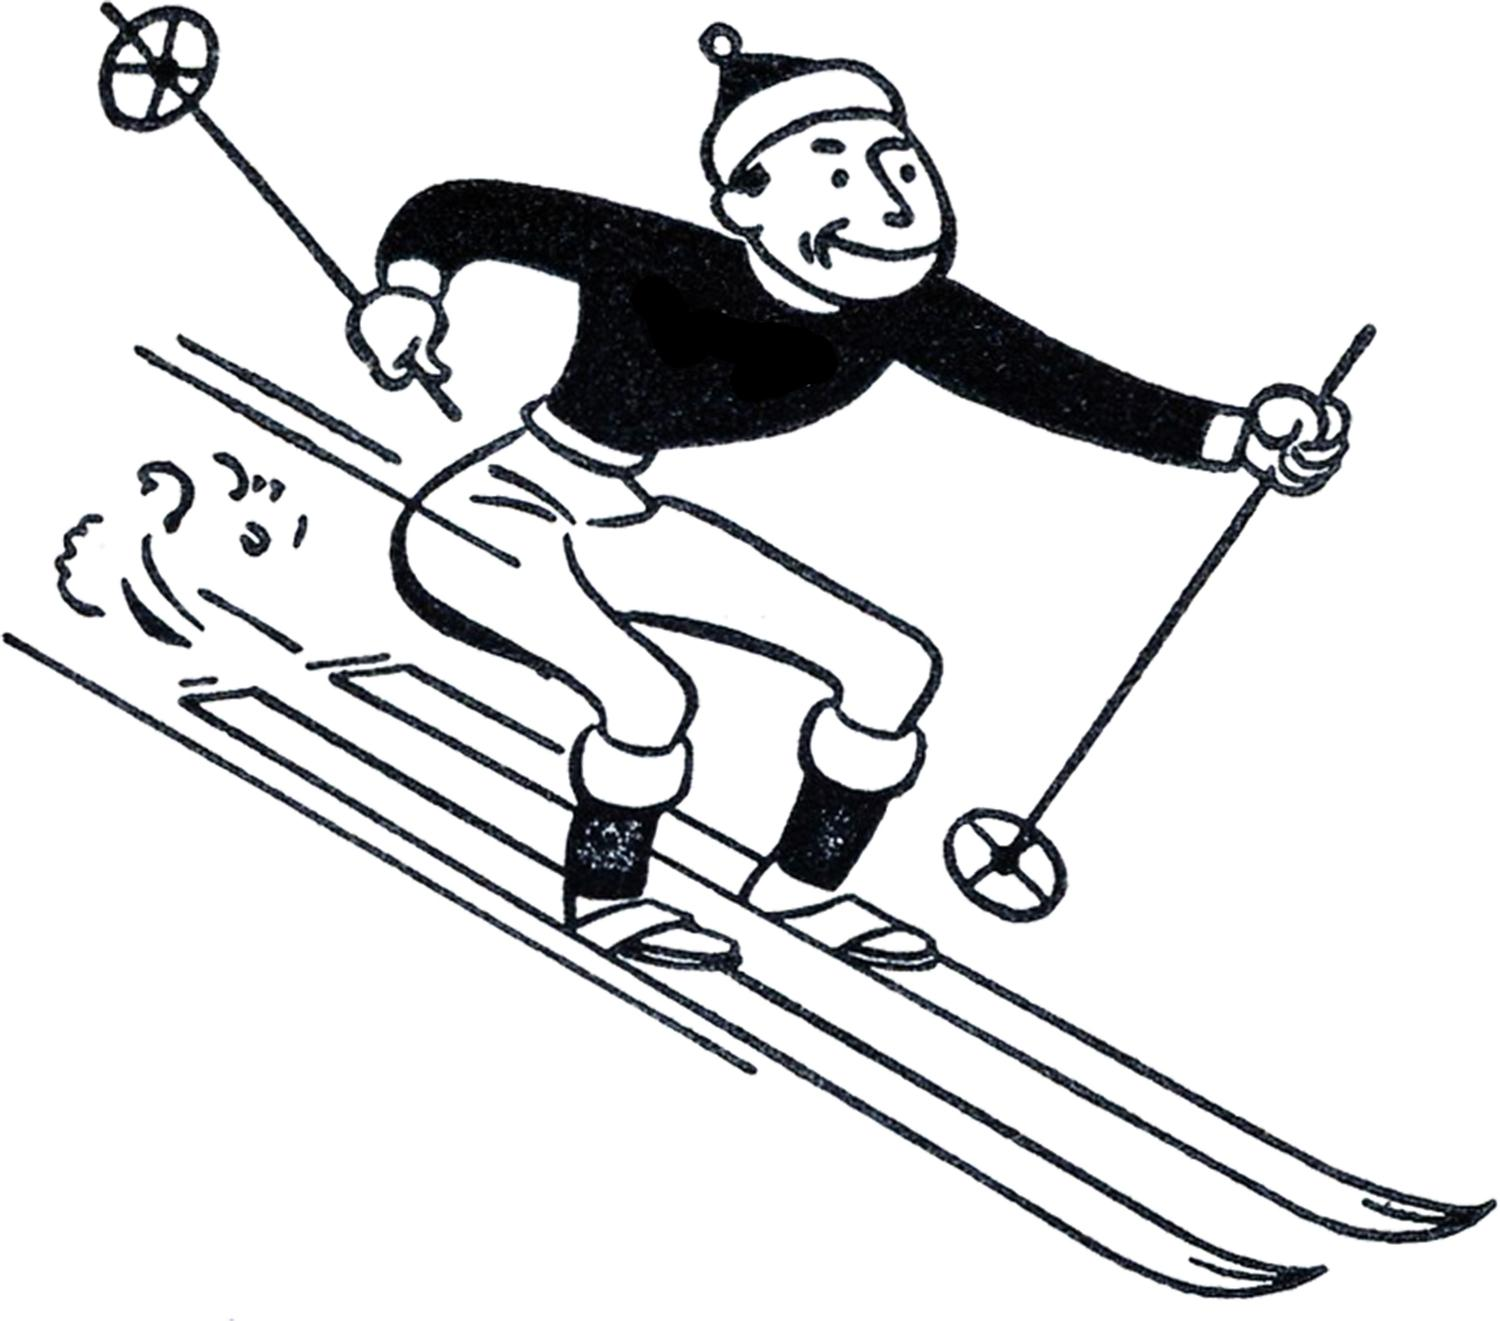 Sporting Equipment Clipart